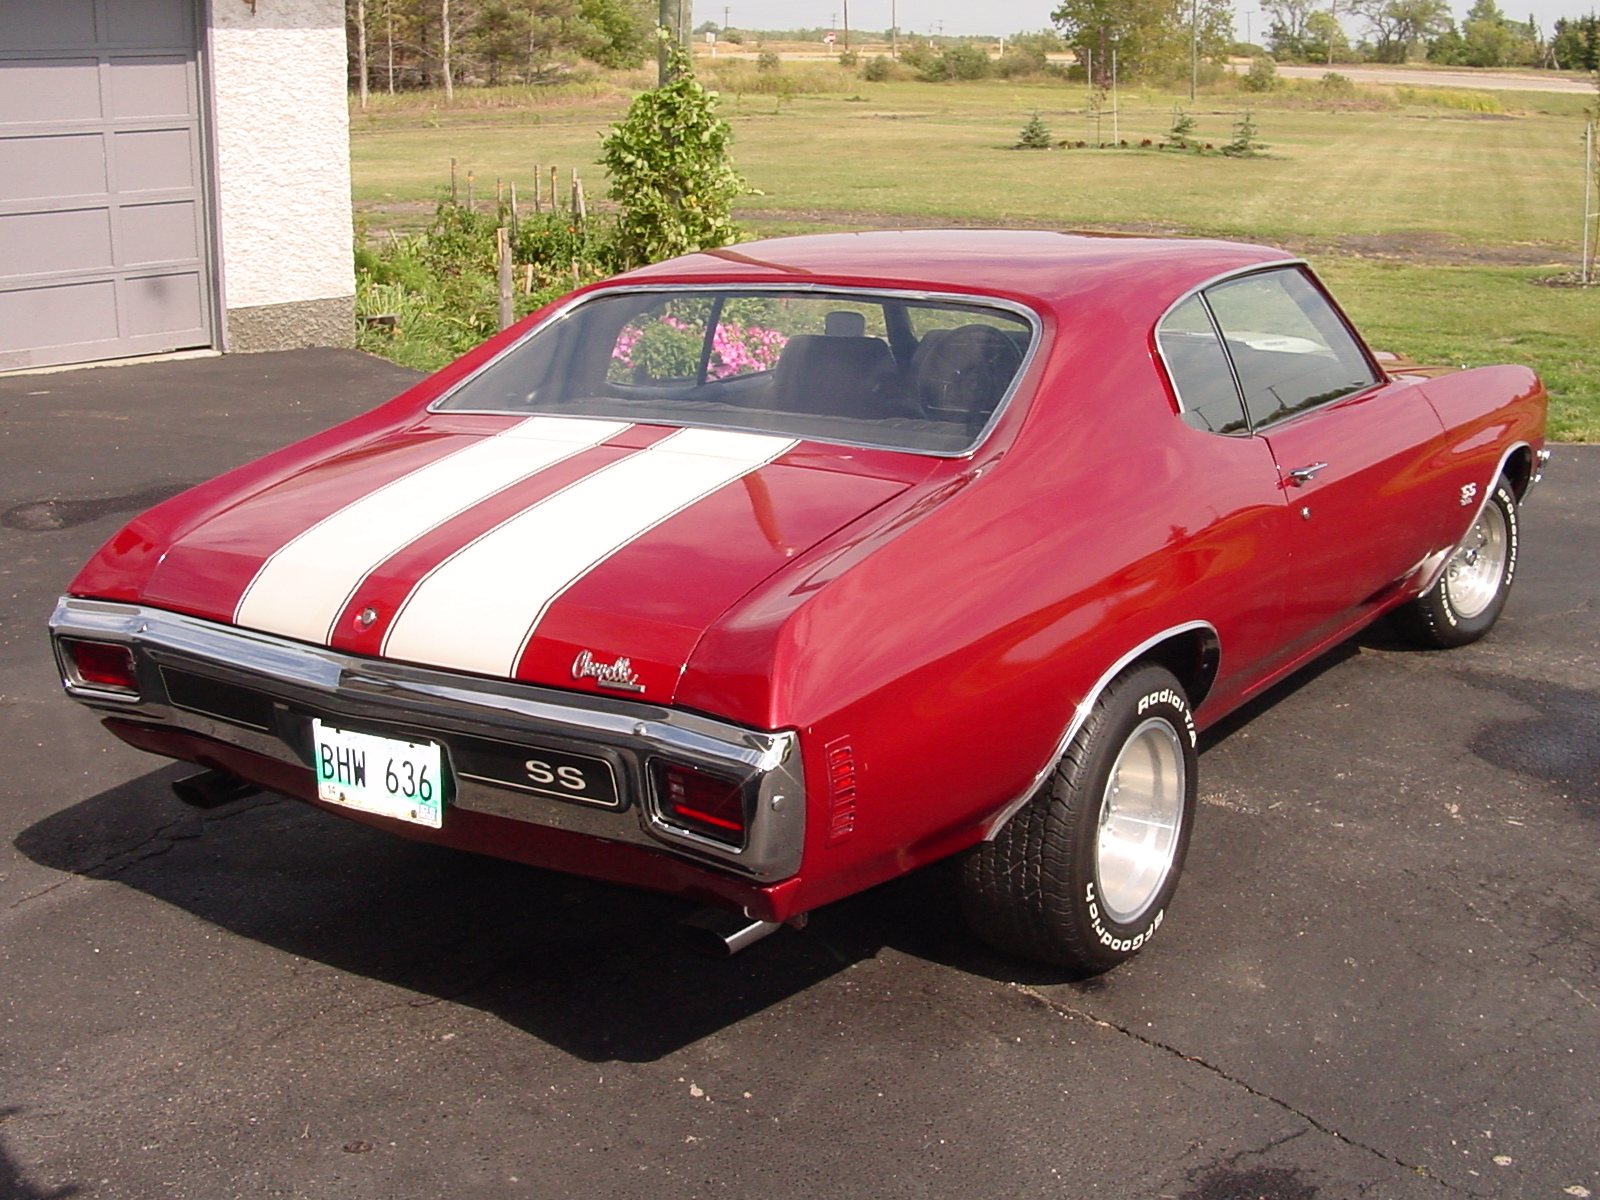 1970 chevrolet chevelle 1970 chevelle ss rear view. Cars Review. Best American Auto & Cars Review